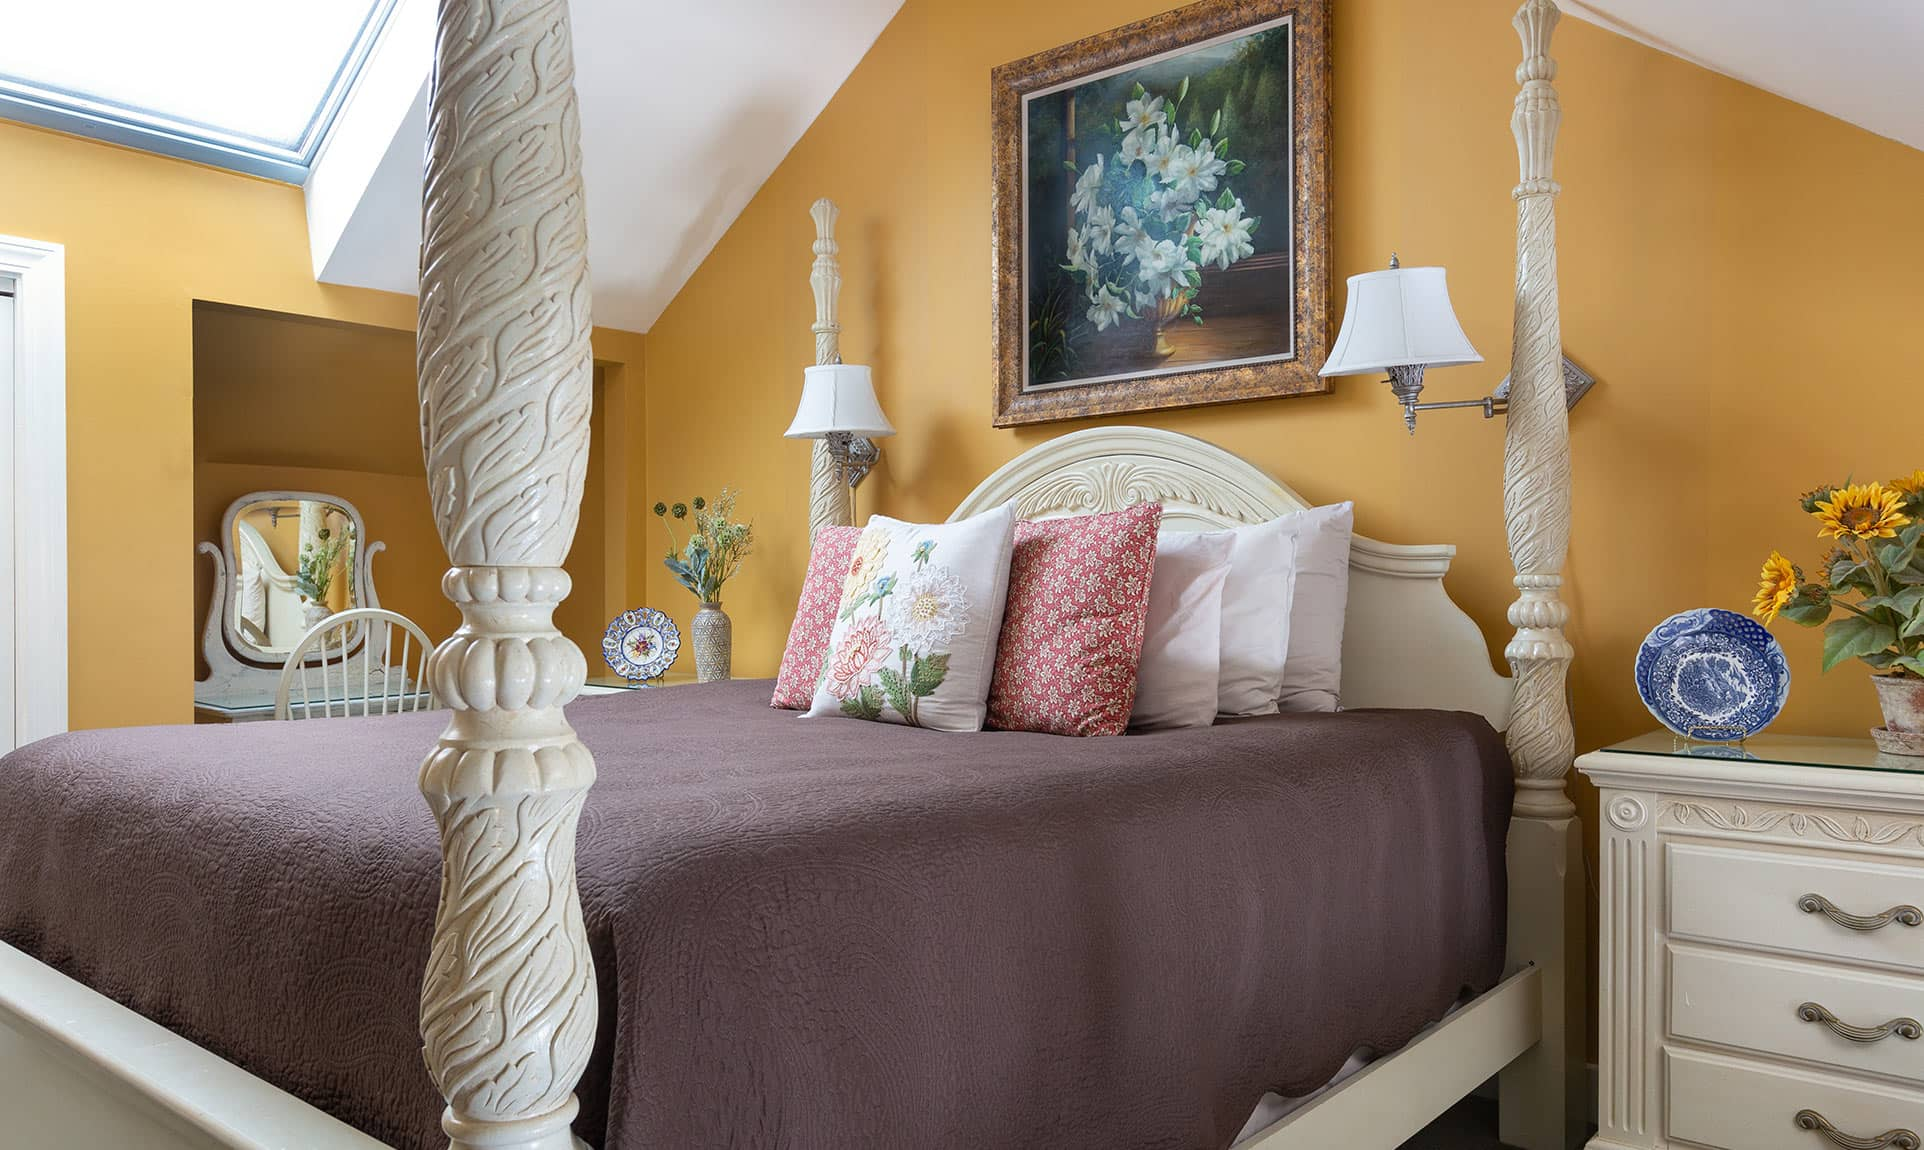 Bed in Garden Suite with skylight above